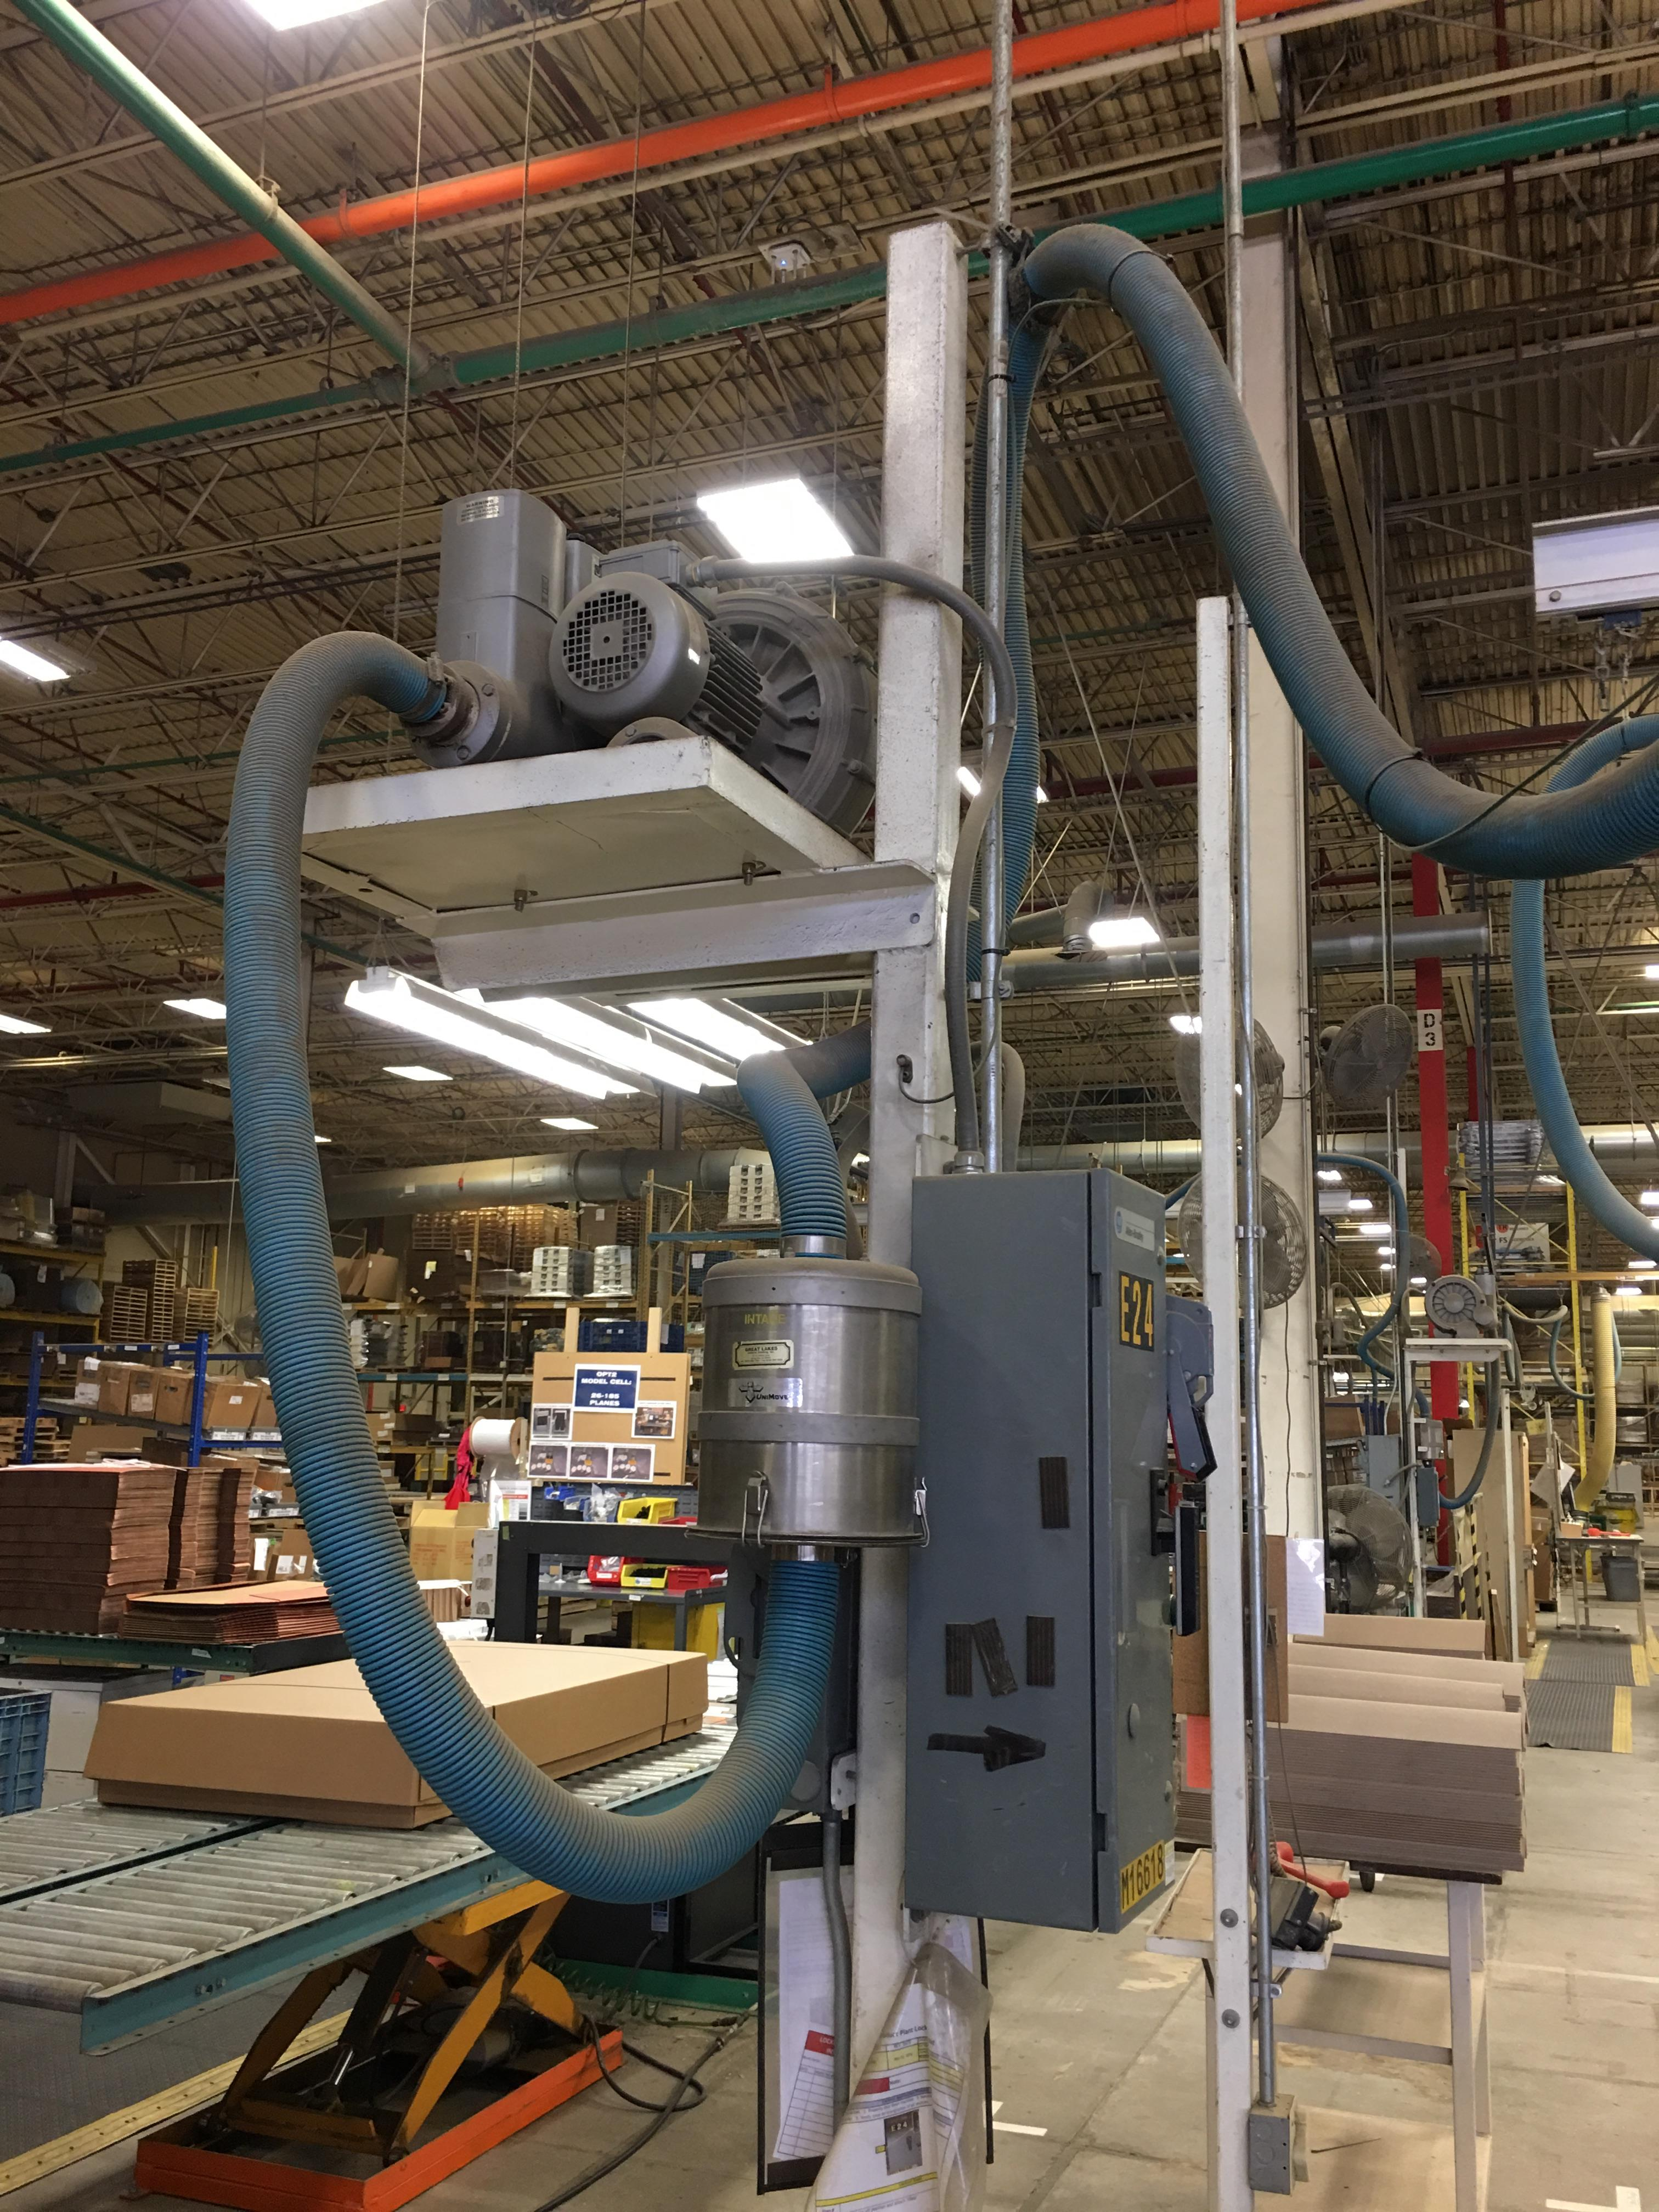 Lot 4 - VACUUM LIFTER WITH PUMP AND OVERHEAD GANTRY RAILS